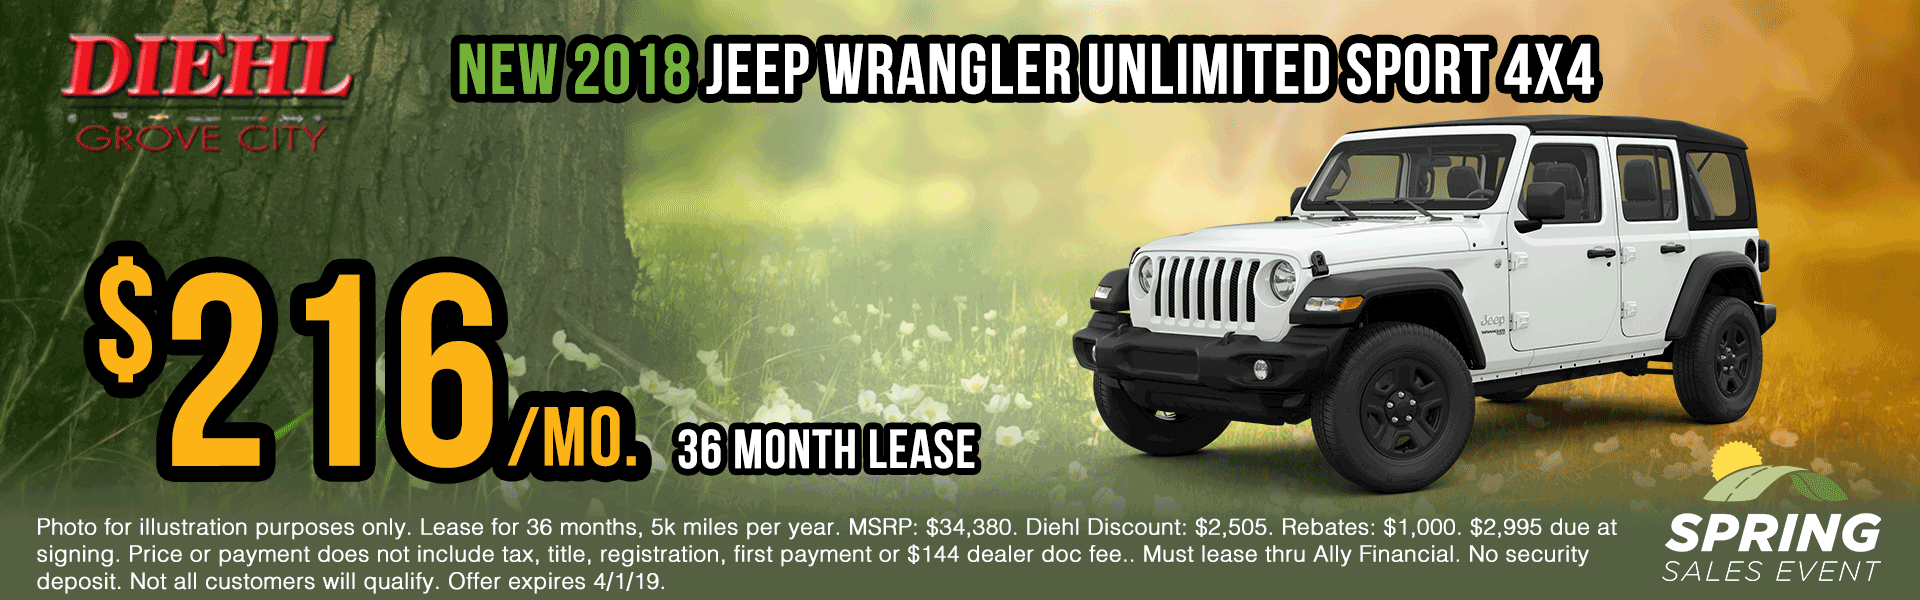 J1200-2018-jeep-wrangler-unlimited-sport Spring sales event jeep specials Chrysler specials ram specials dodge specials mopar specials new vehicle specials Diehl automotive Diehl Robinson Diehl of grove city specials lease specials